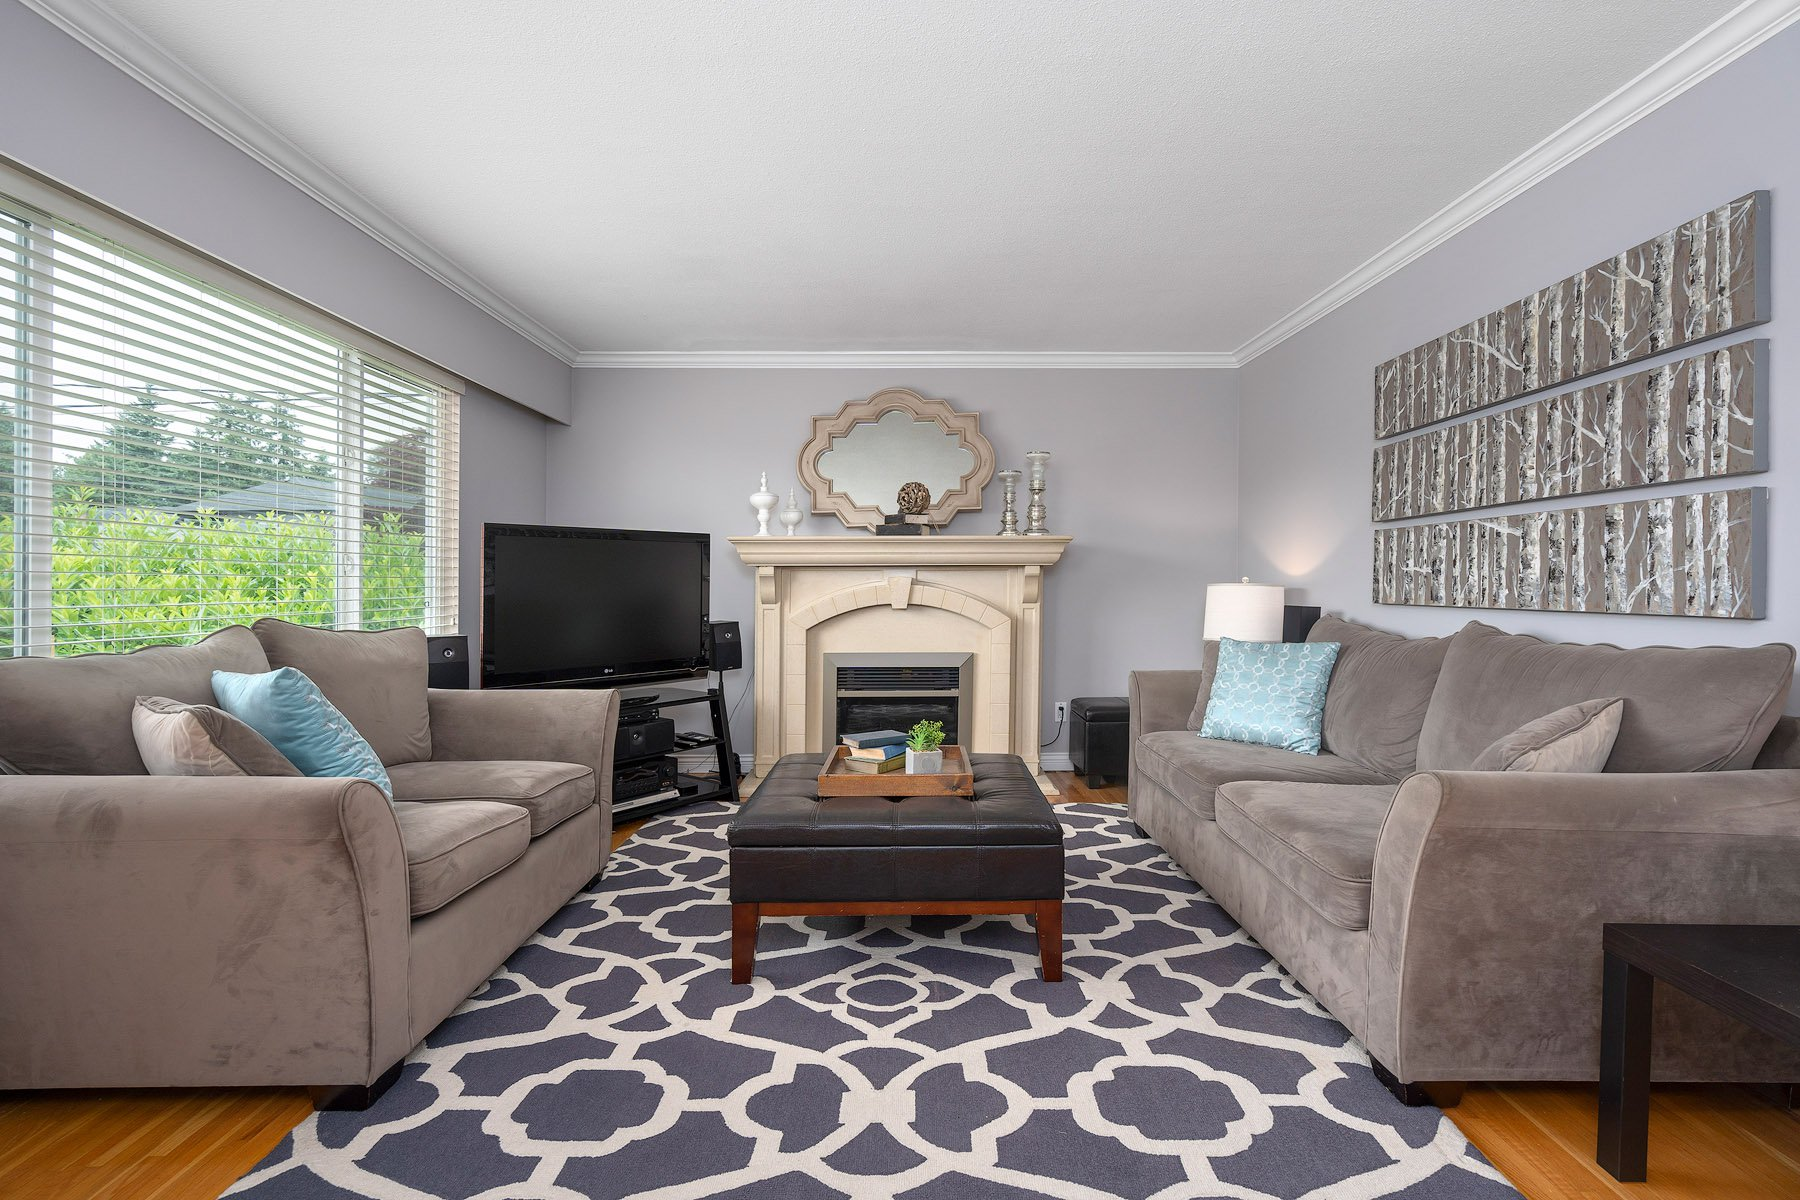 Photo 3: Photos: 423 MONTGOMERY Street in Coquitlam: Central Coquitlam House for sale : MLS®# R2380693